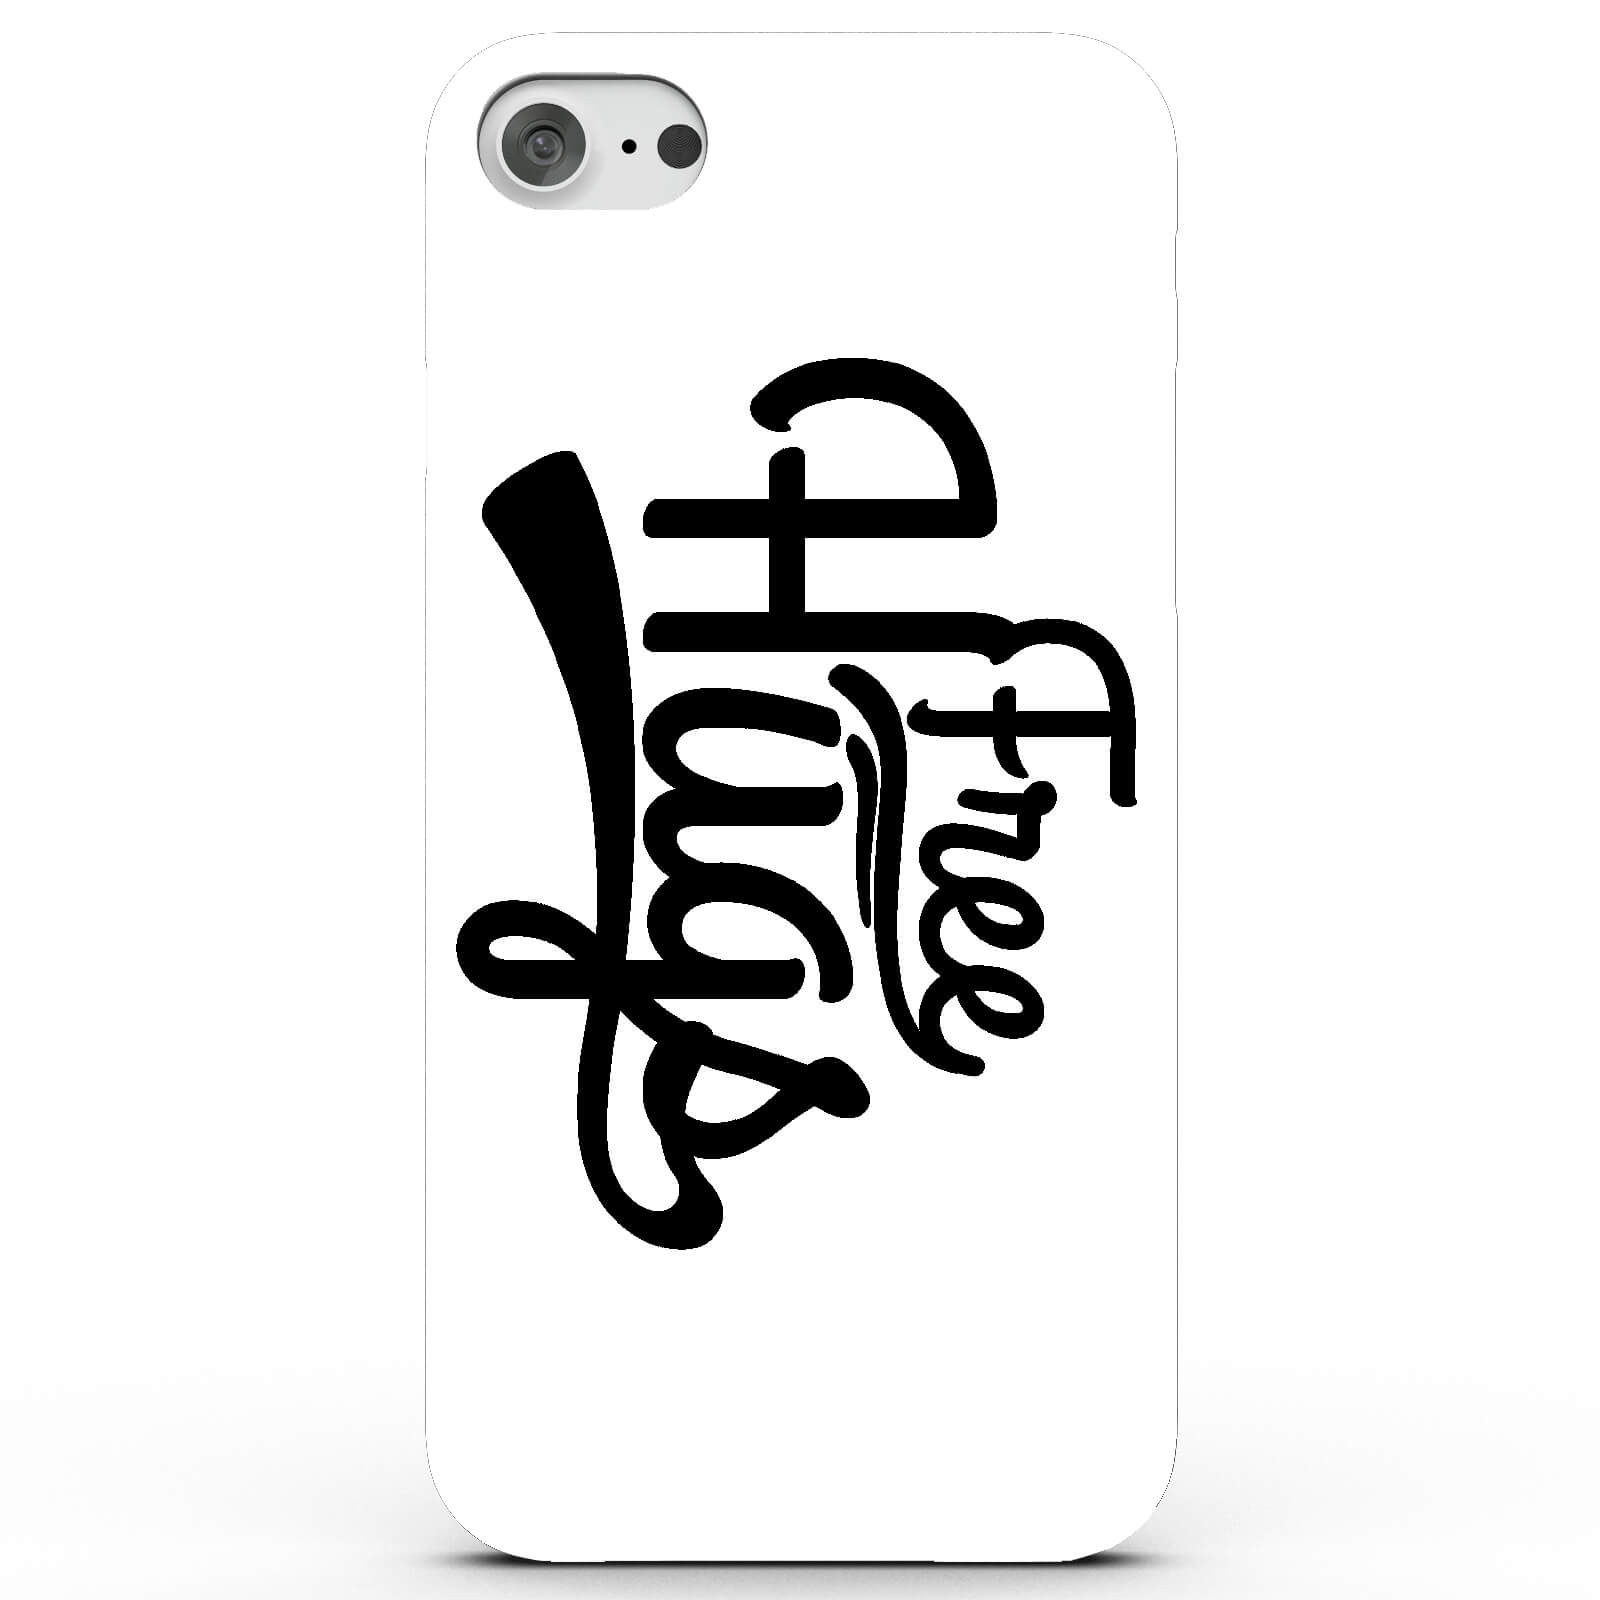 Coque iPhone & Android Free Hugs - 4 Couleurs